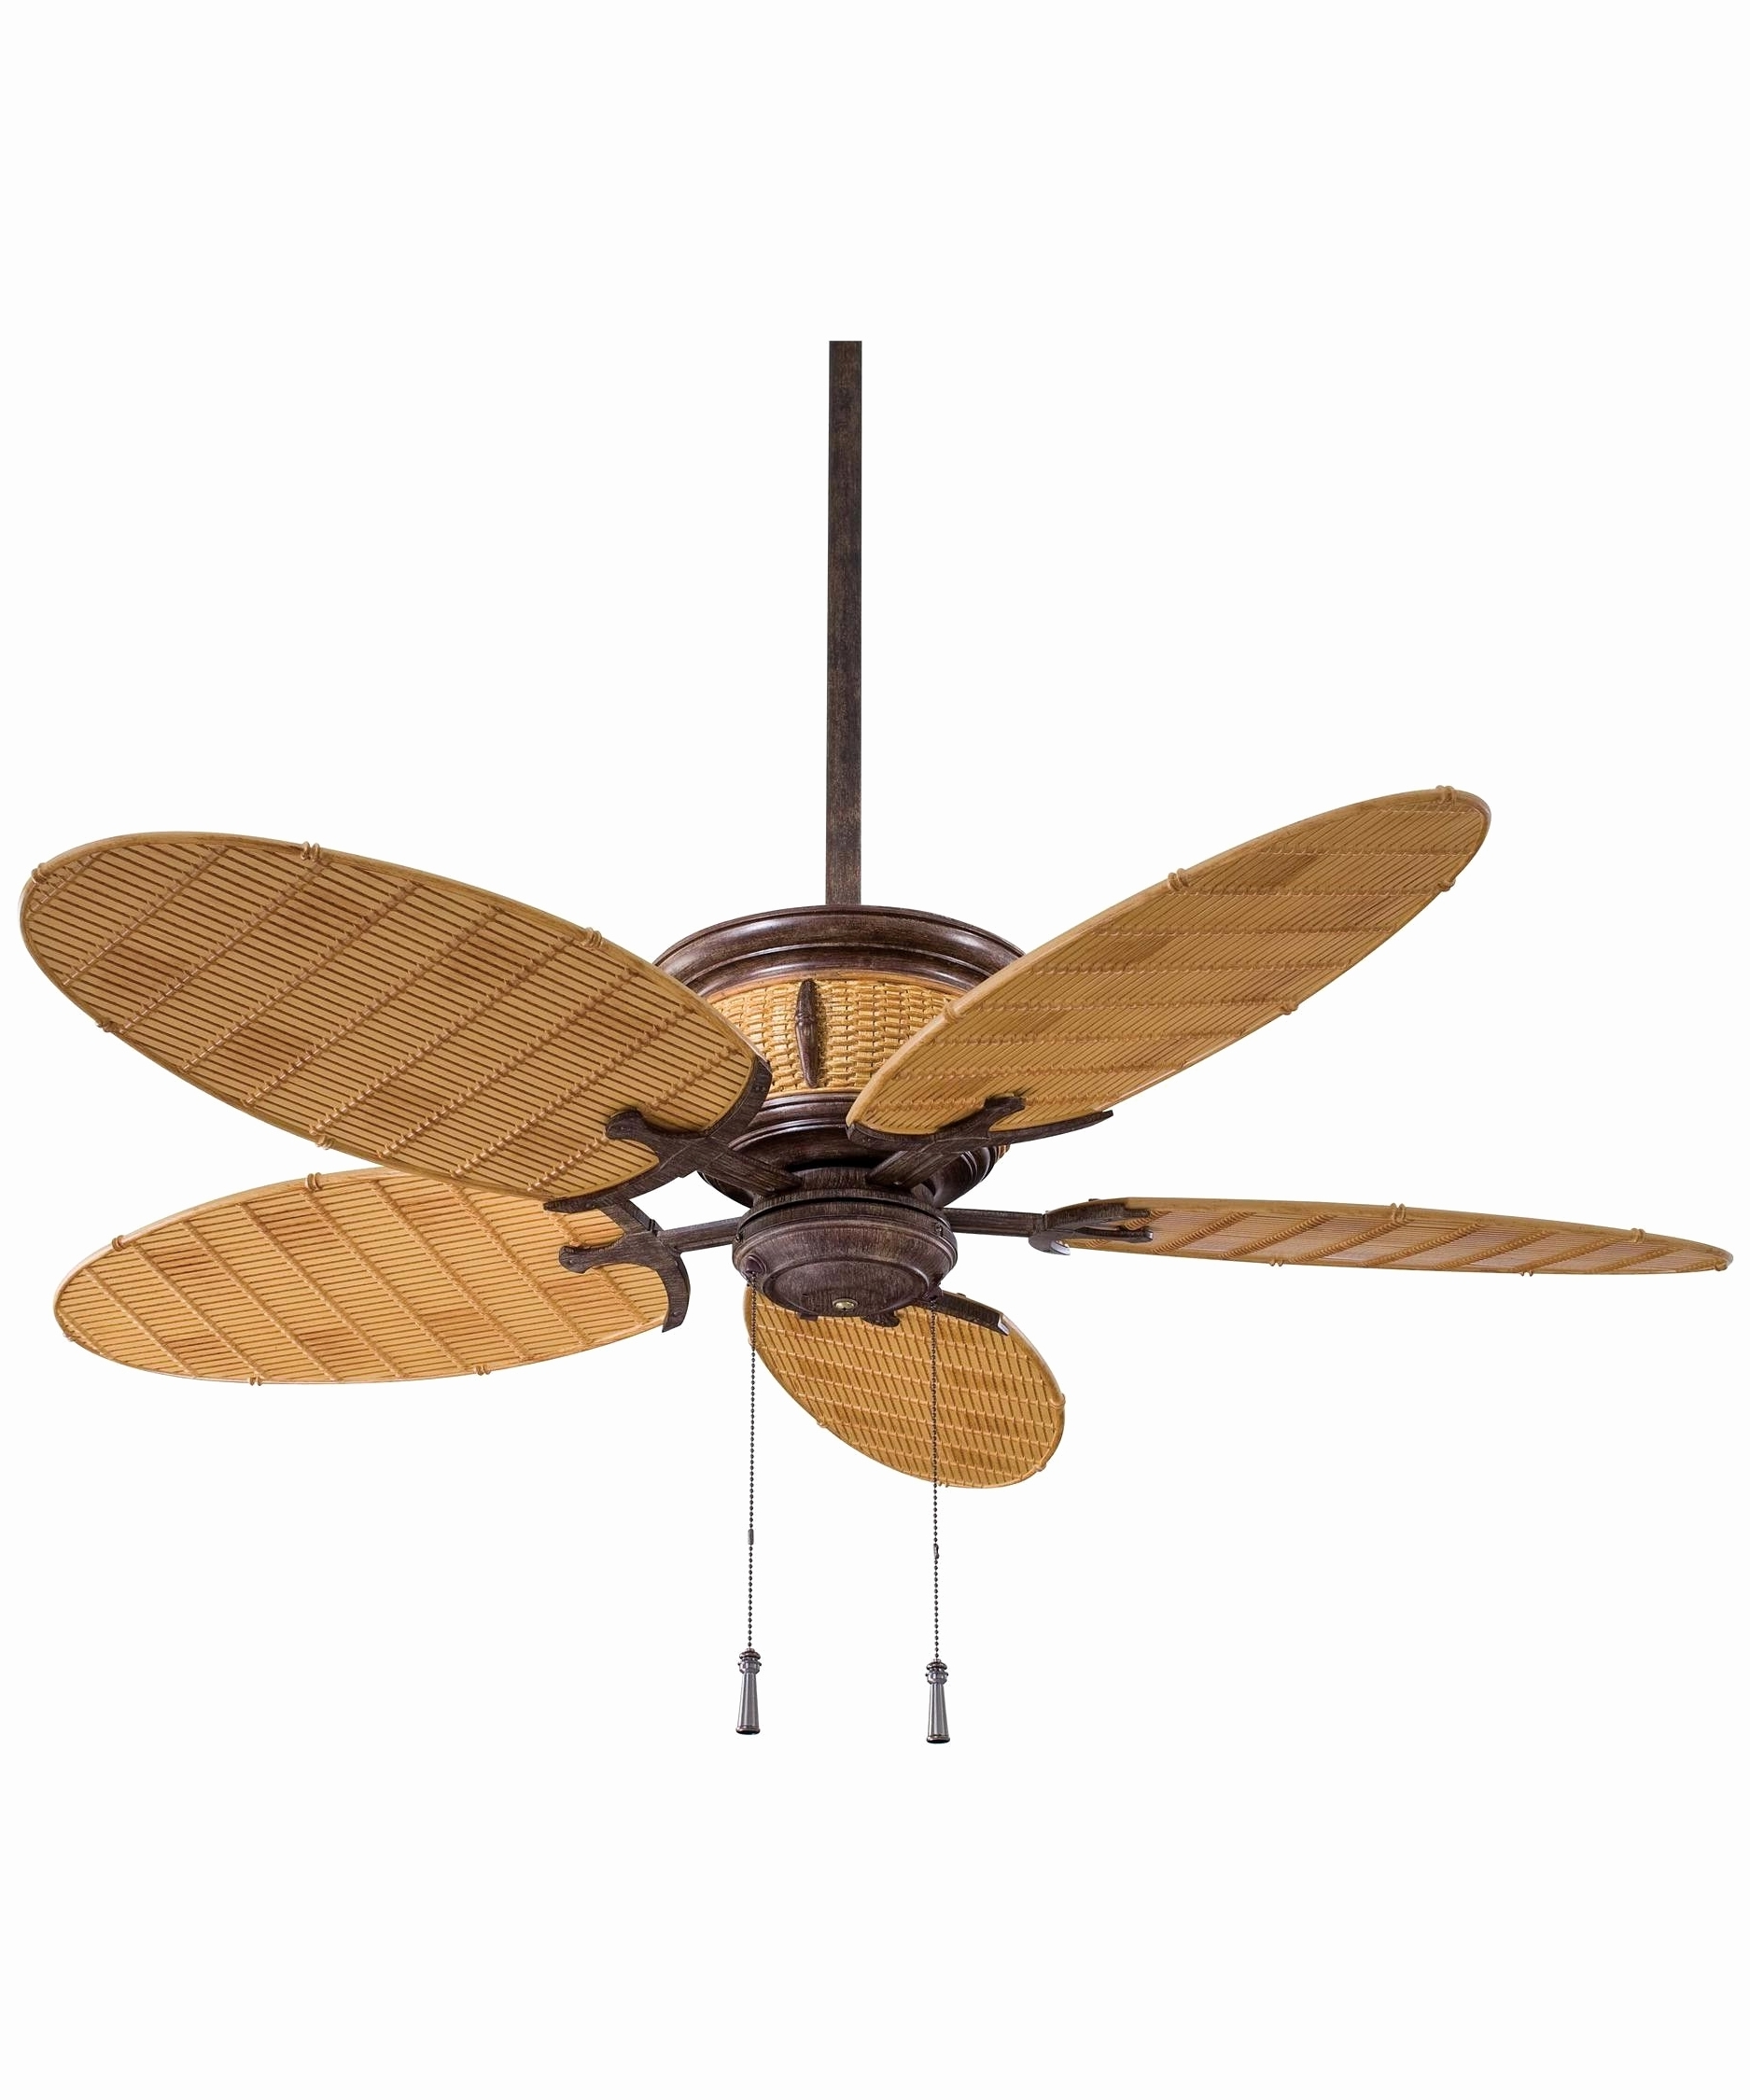 Popular Outdoor Ceiling Fans For Gazebo Inside Outdoor Ceiling Fan For Gazebo Lovely Great Outdoor Fan Home Depot (Gallery 13 of 20)